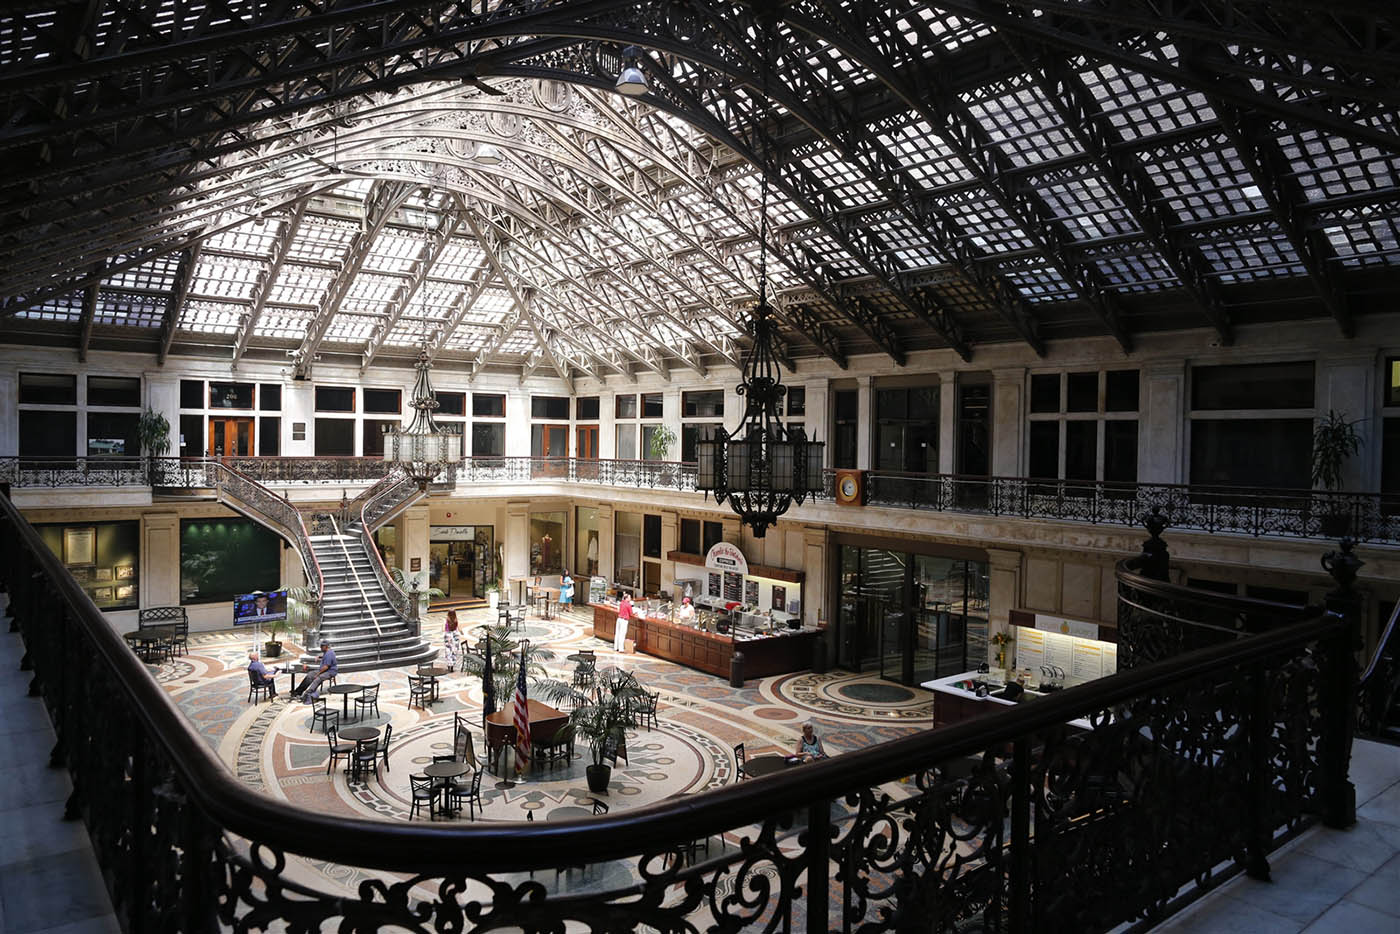 1005514973 Ellicott Square GEE29